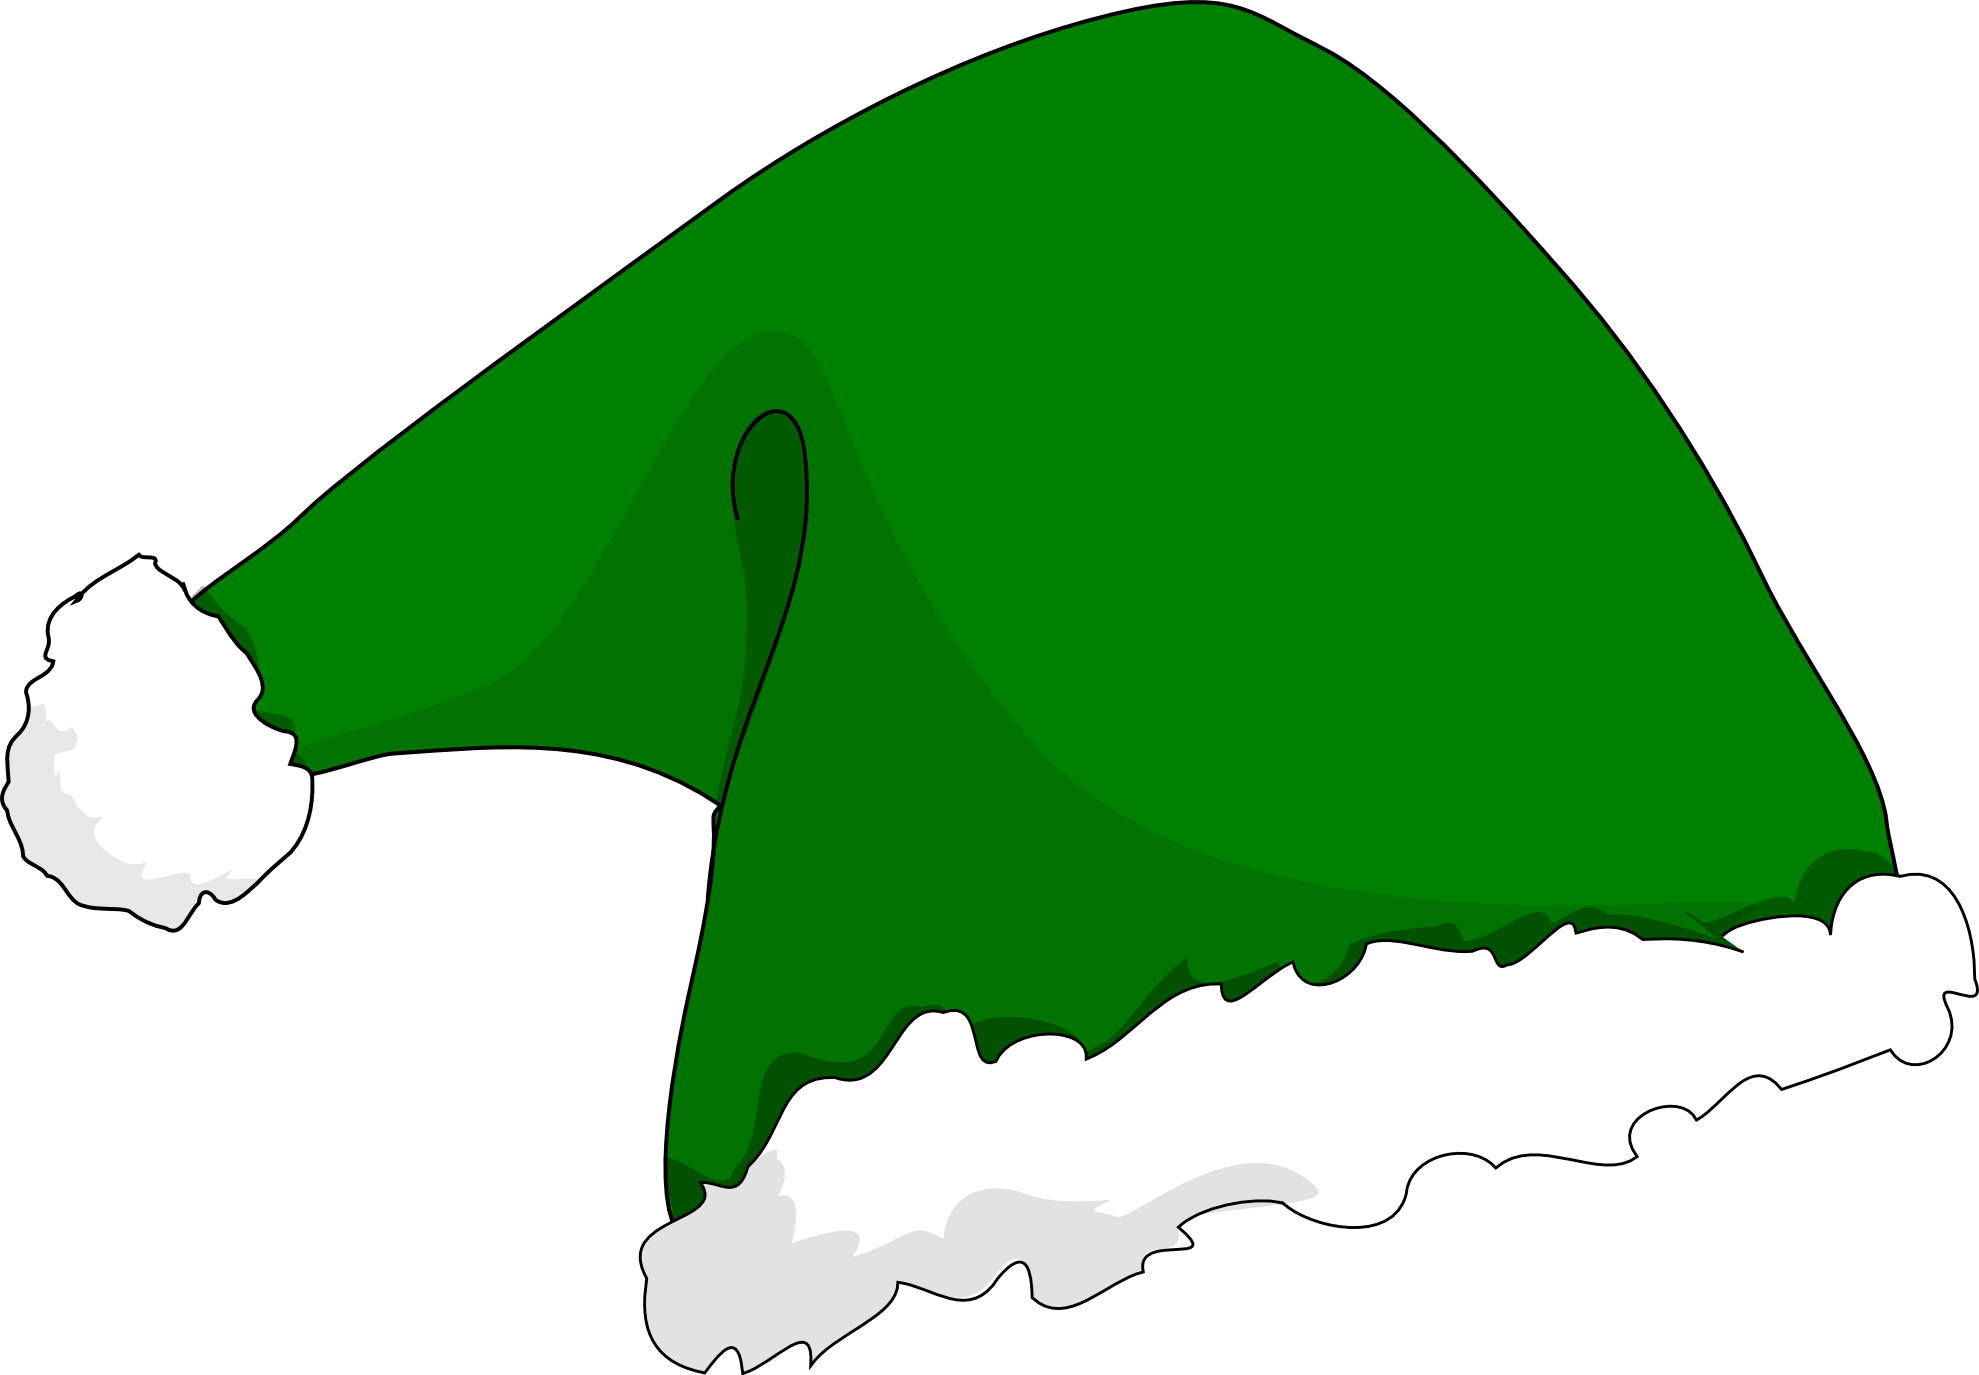 Dog in santa hat clipart jpg royalty free download 28+ Collection of Green Santa Hat Clipart | High quality, free ... jpg royalty free download